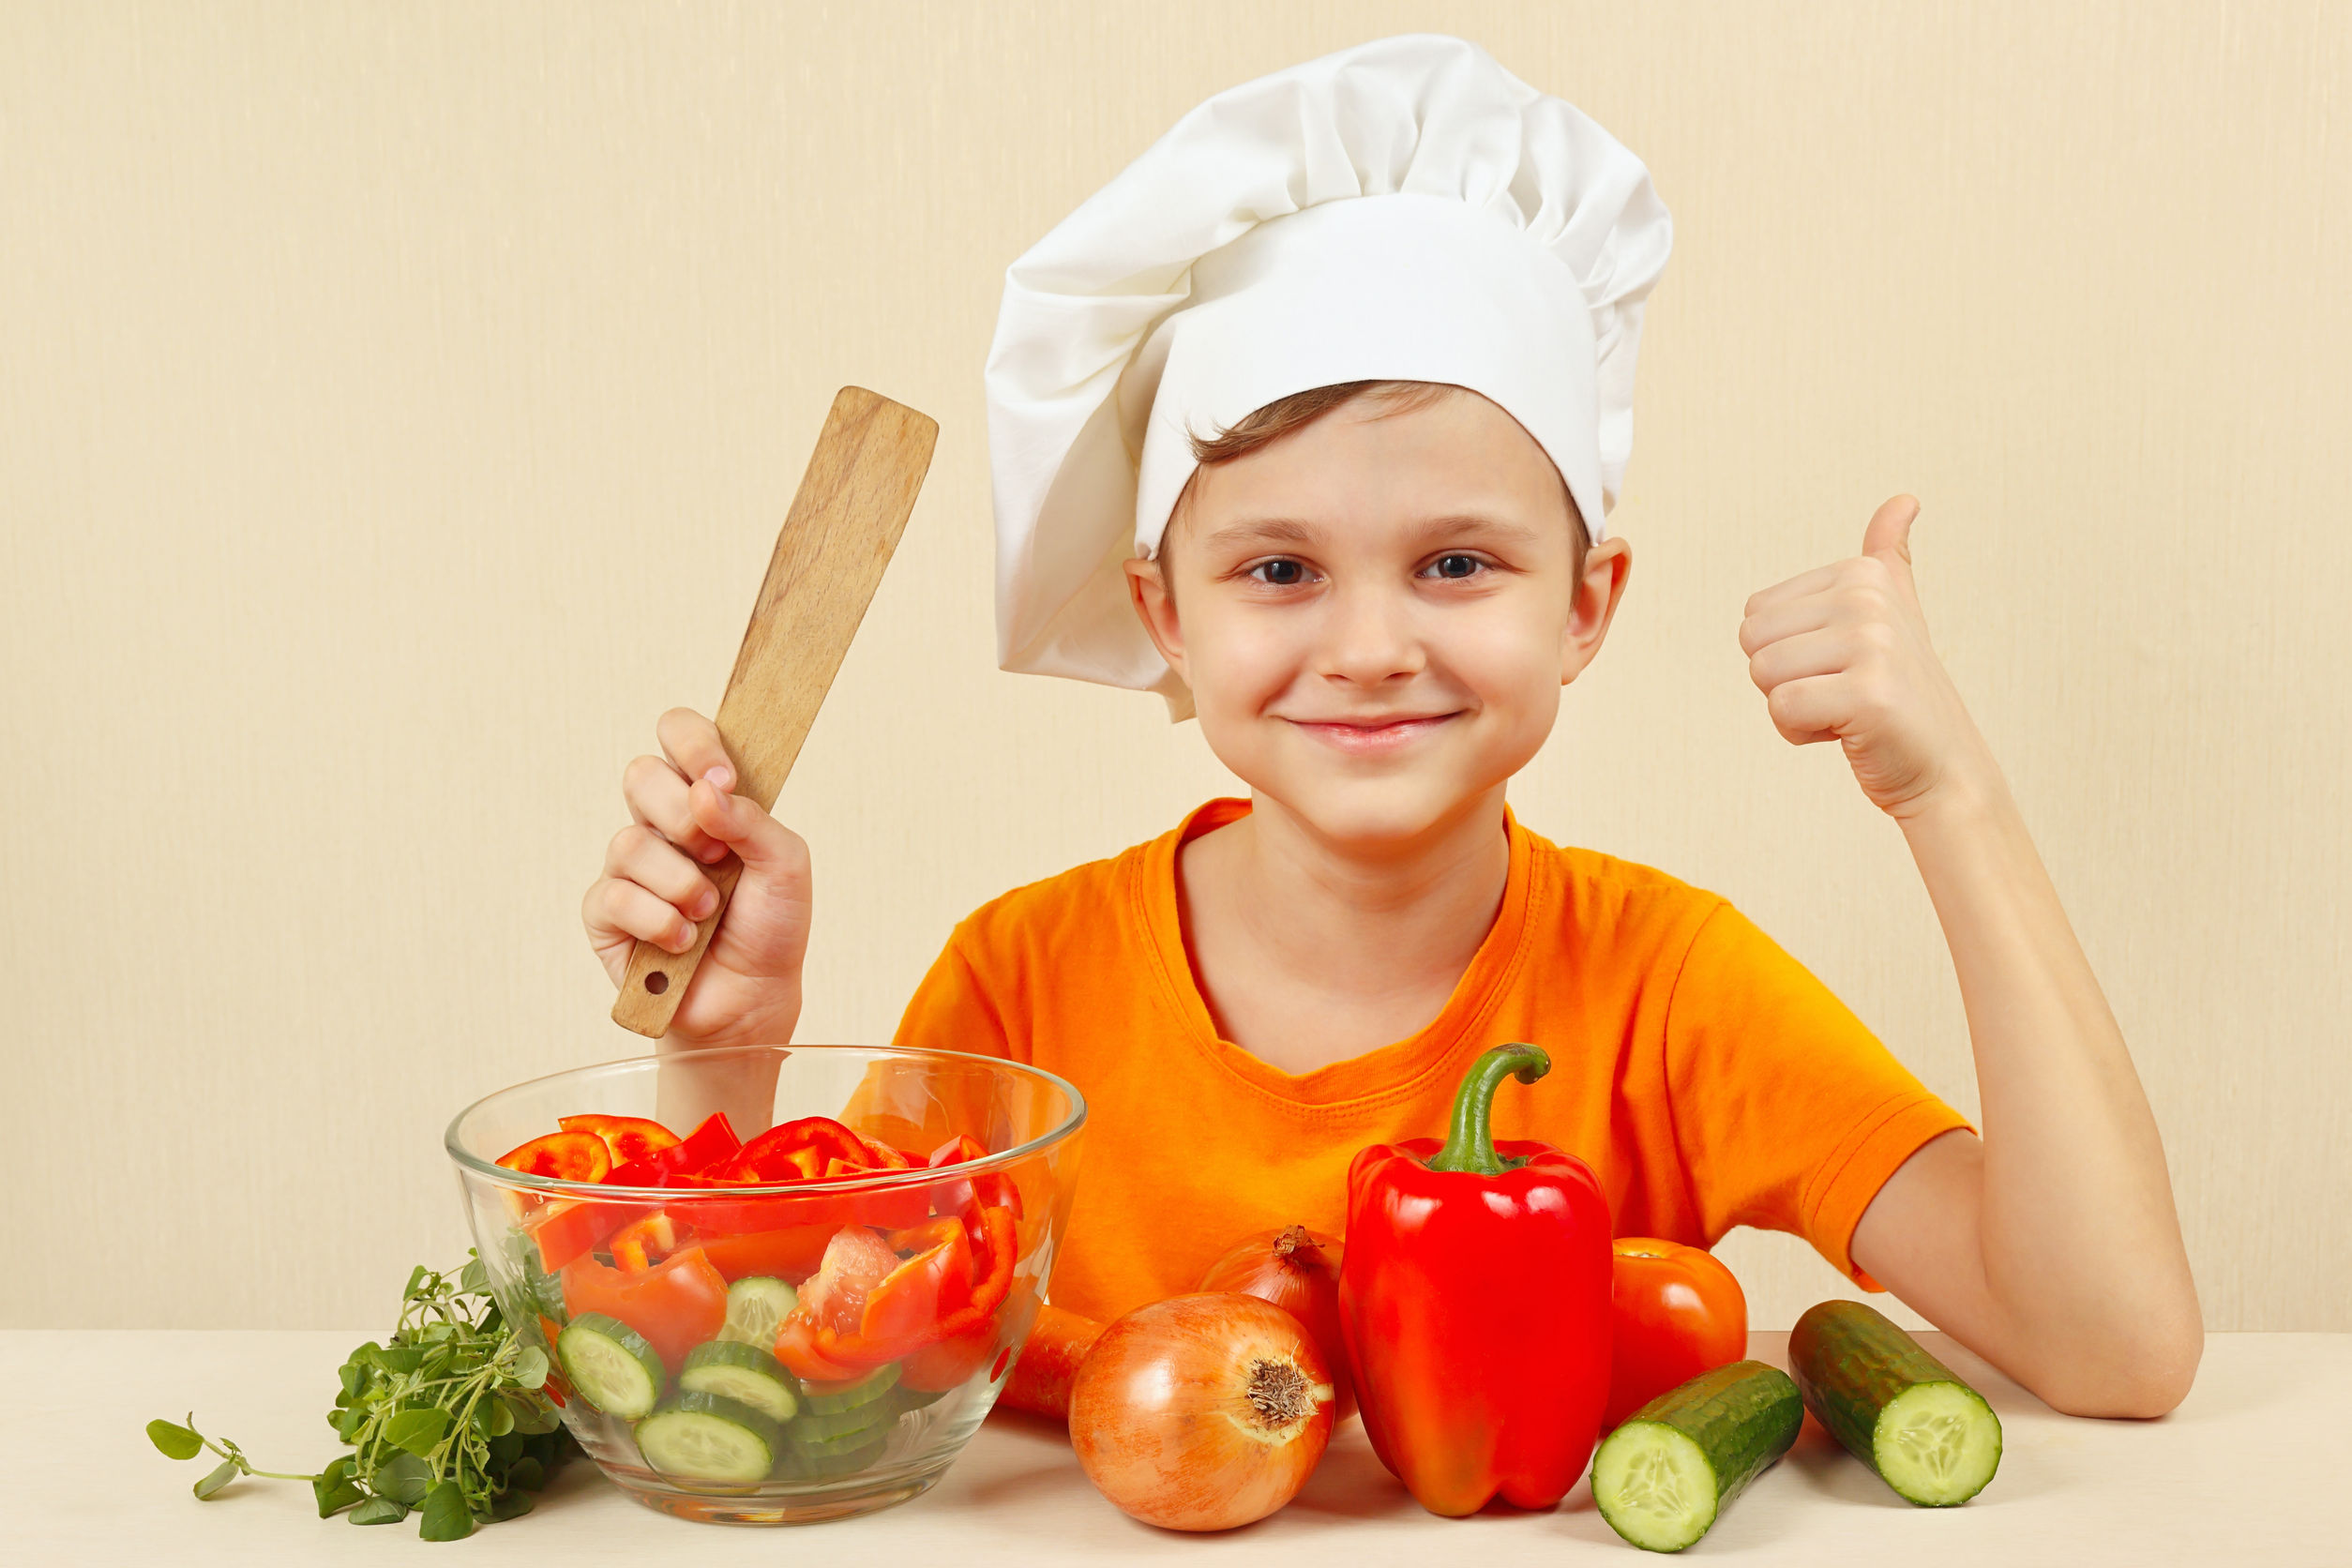 51760880 - little funny chef shows how to cook a vegetable salad